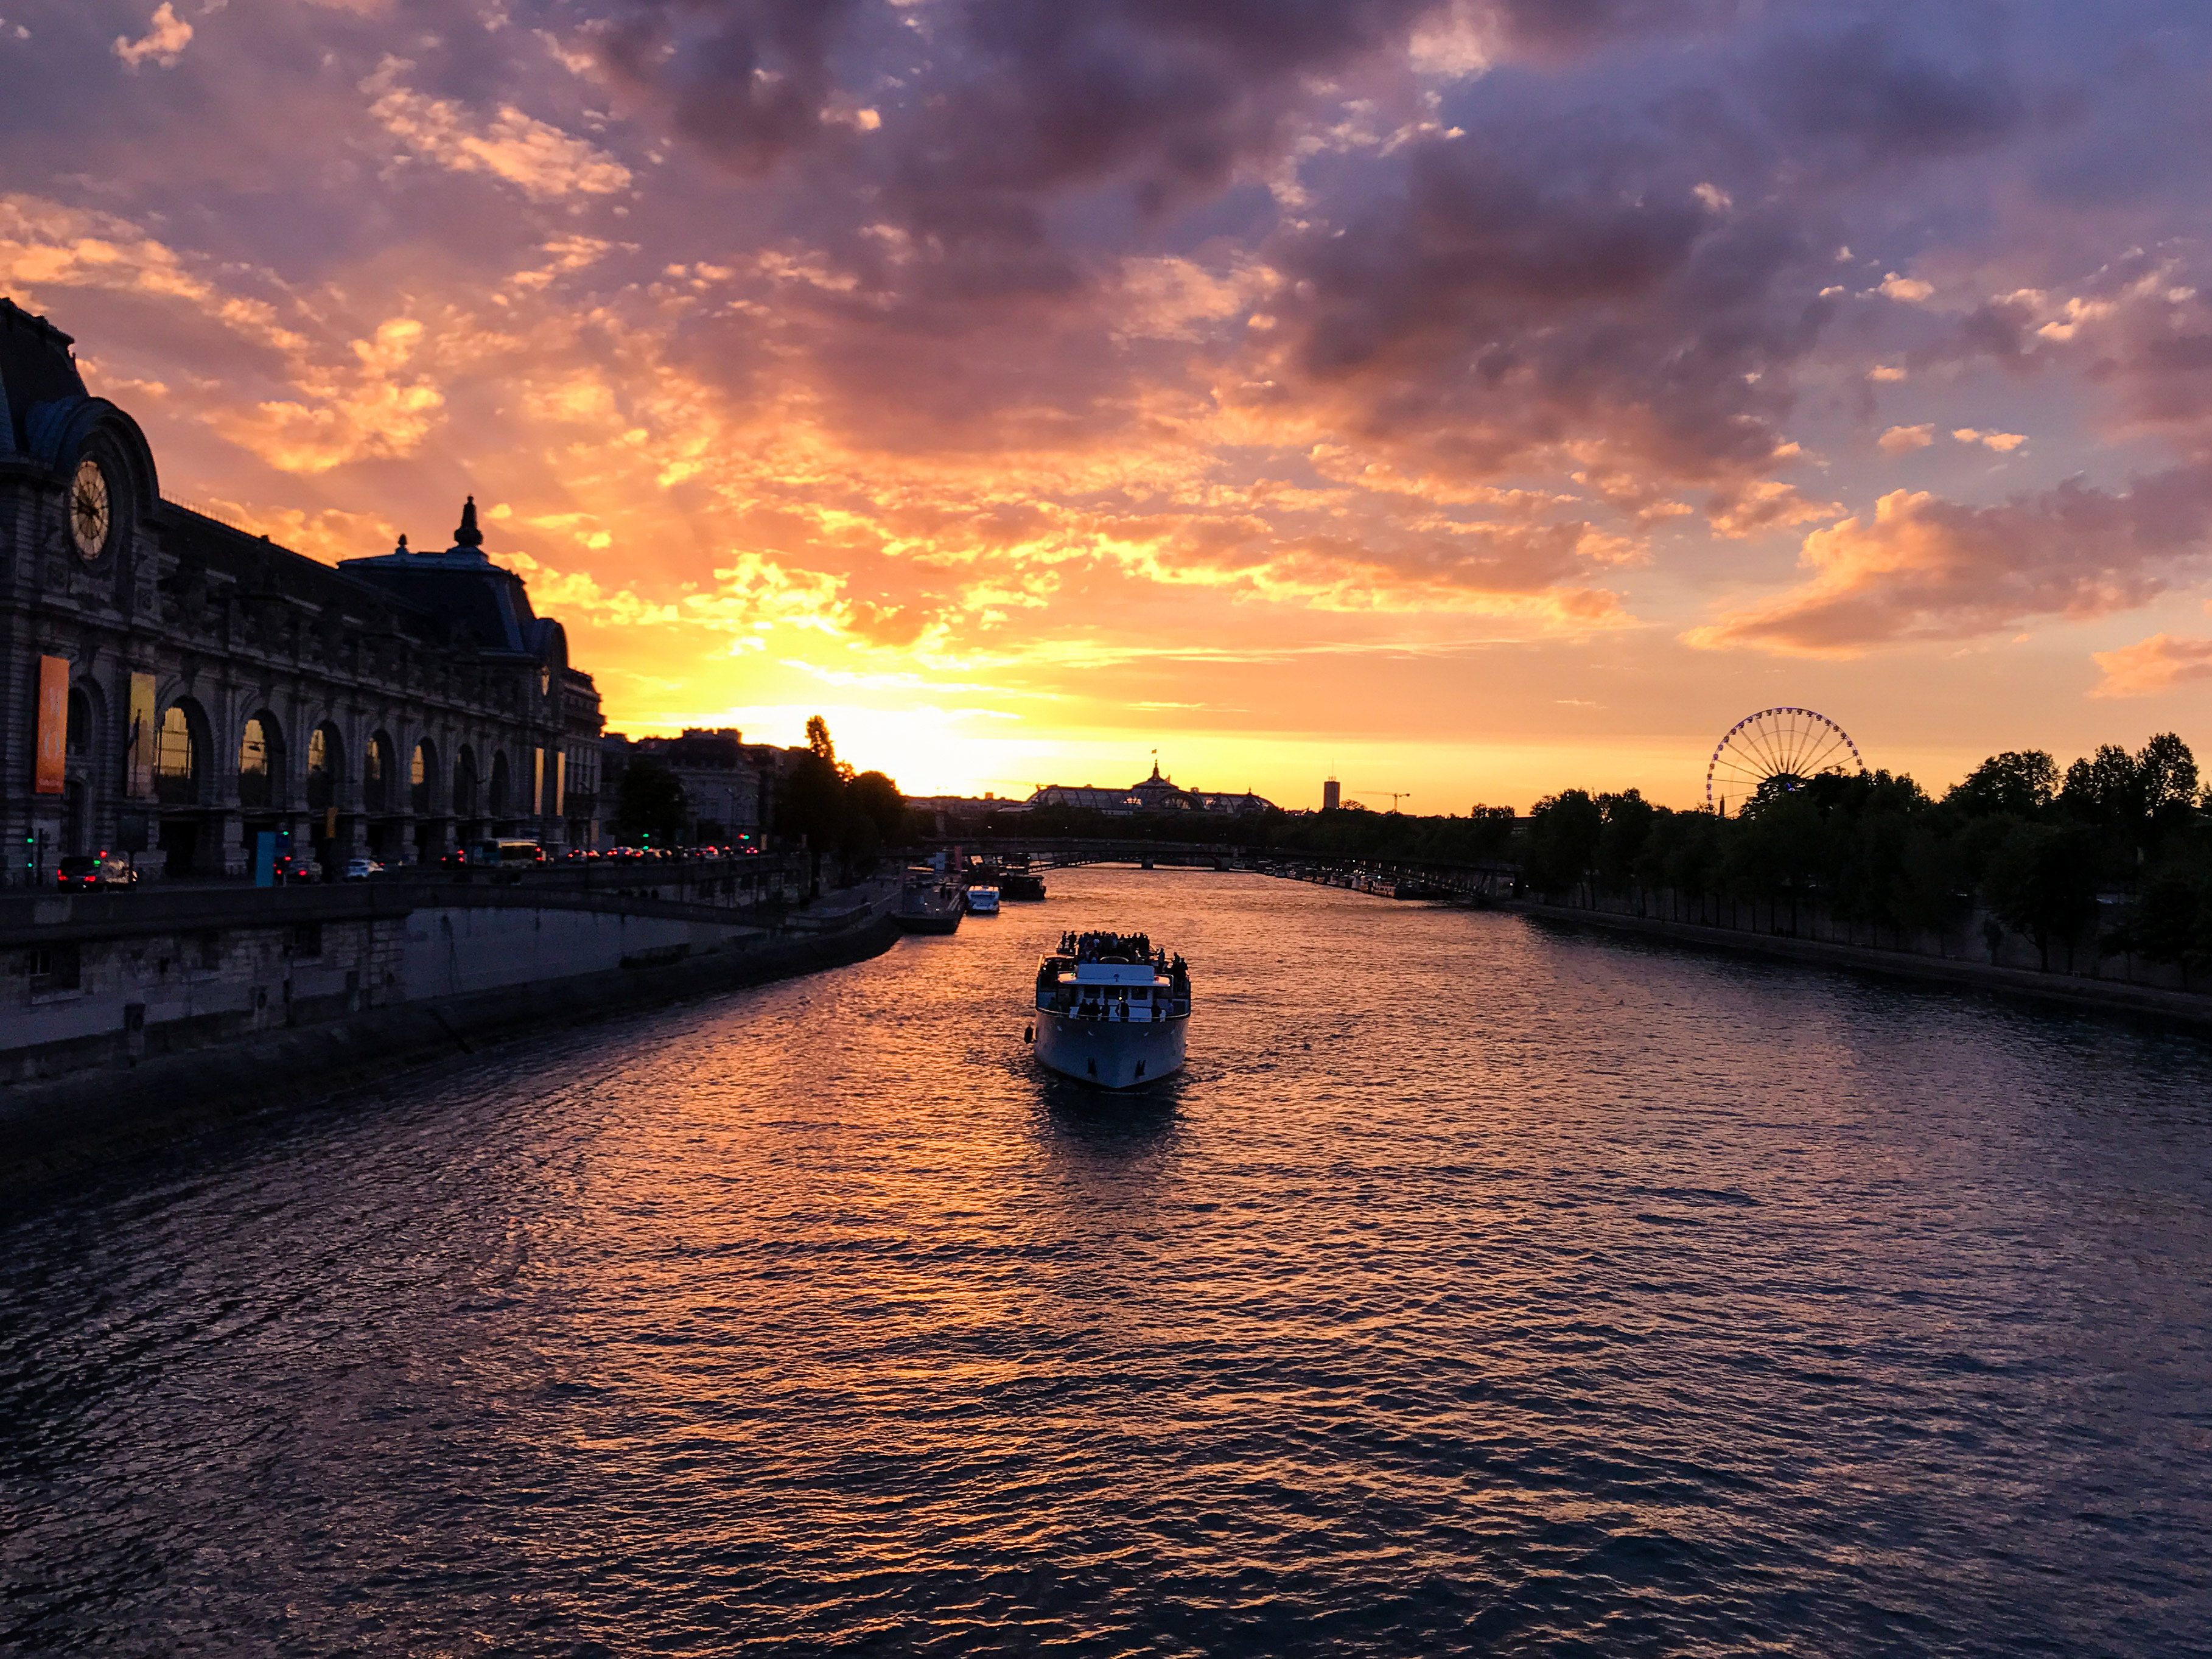 Sunset on the Seine River